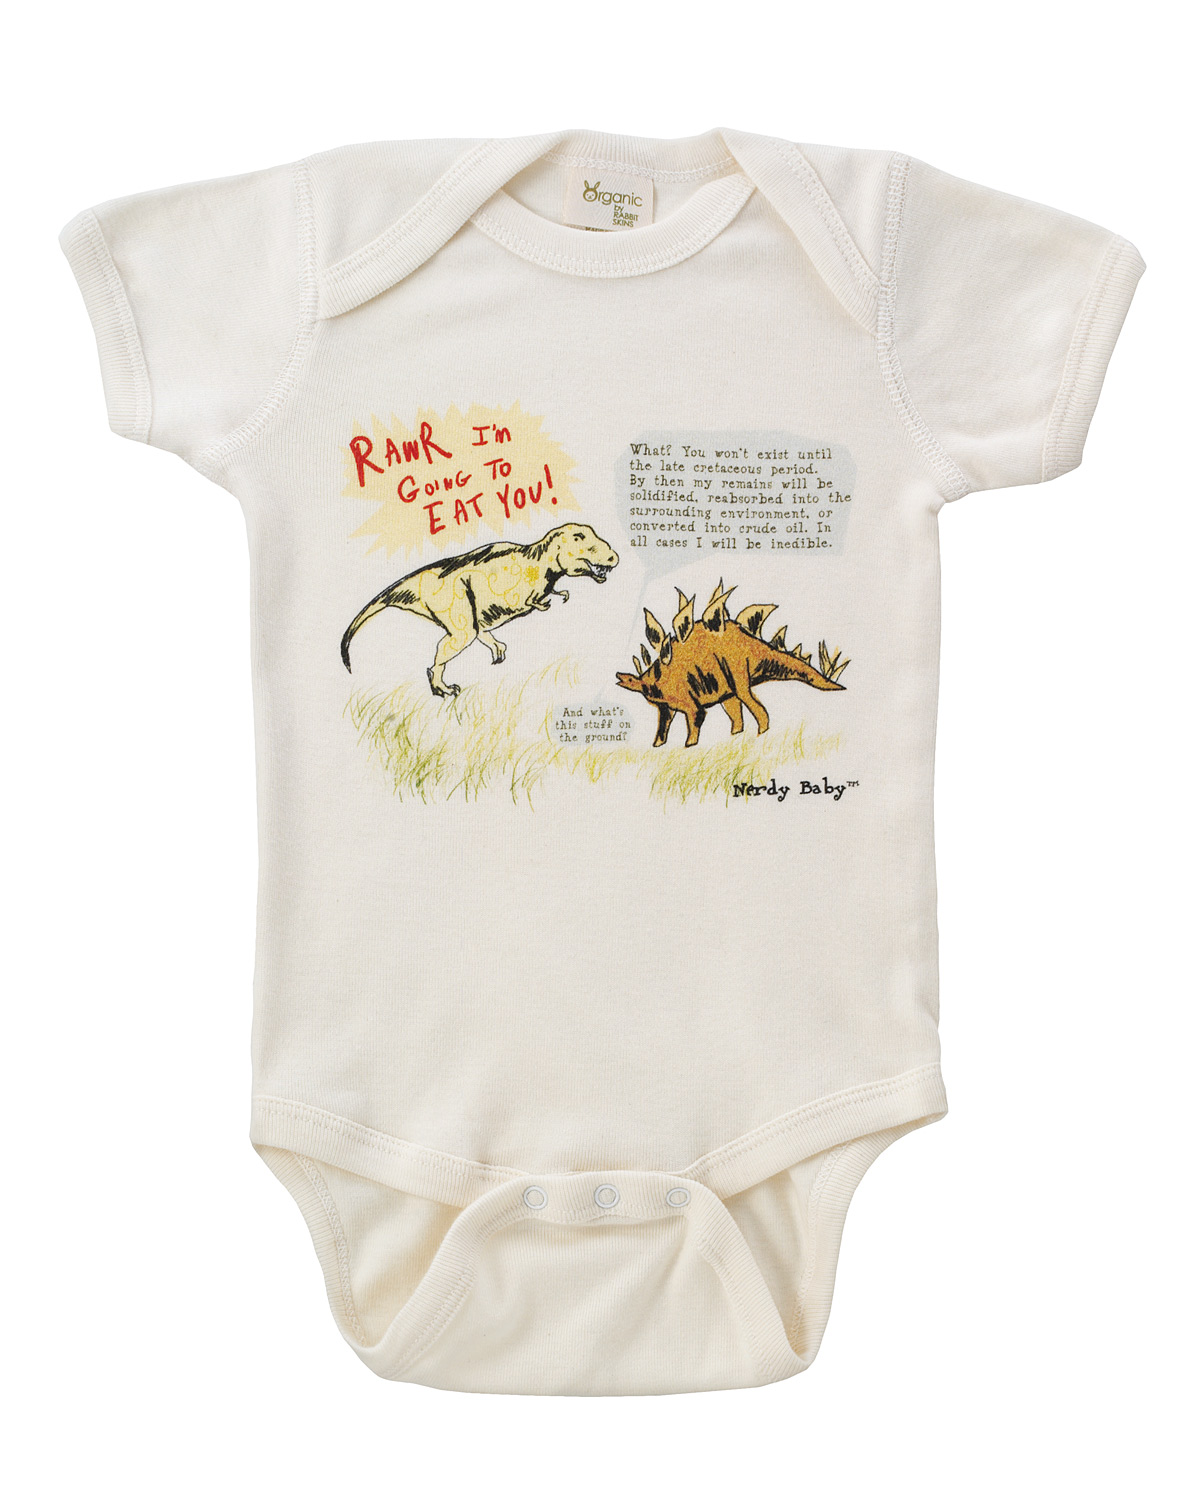 T Rex And Stegosaurus Arguing About Science Baby One